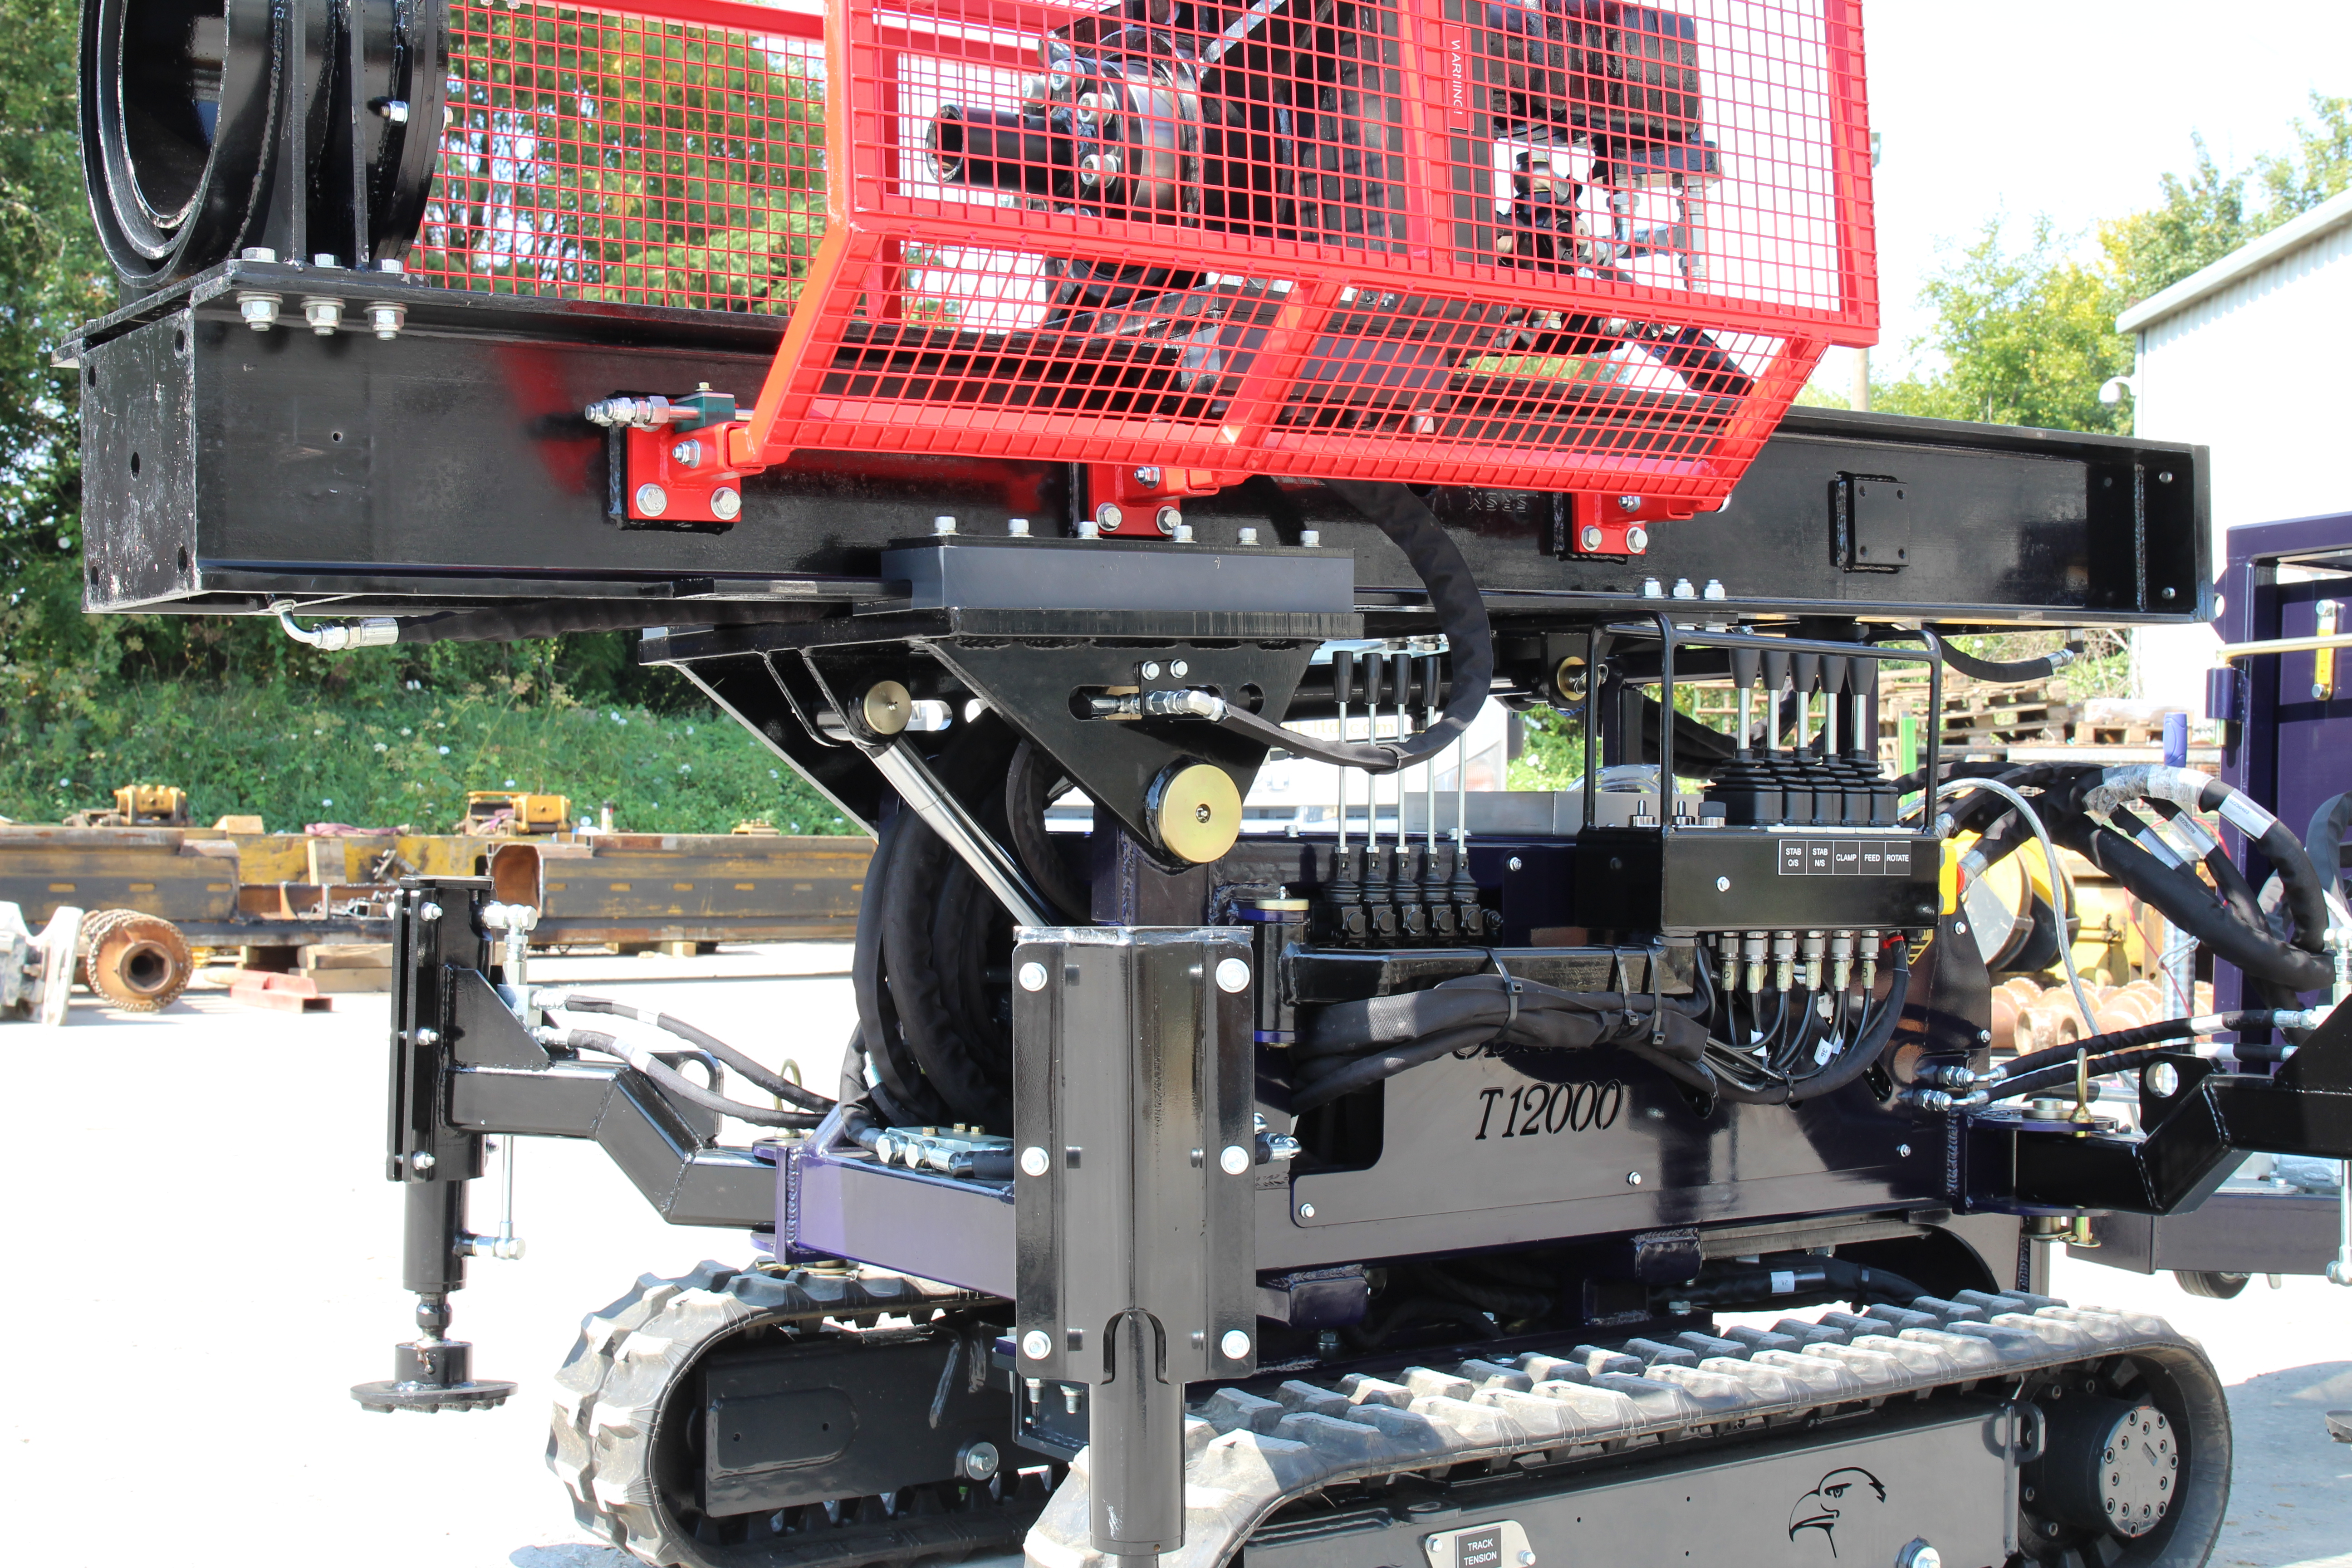 Press Release; Piling Equipment Ltd strike again with their latest Cobra release